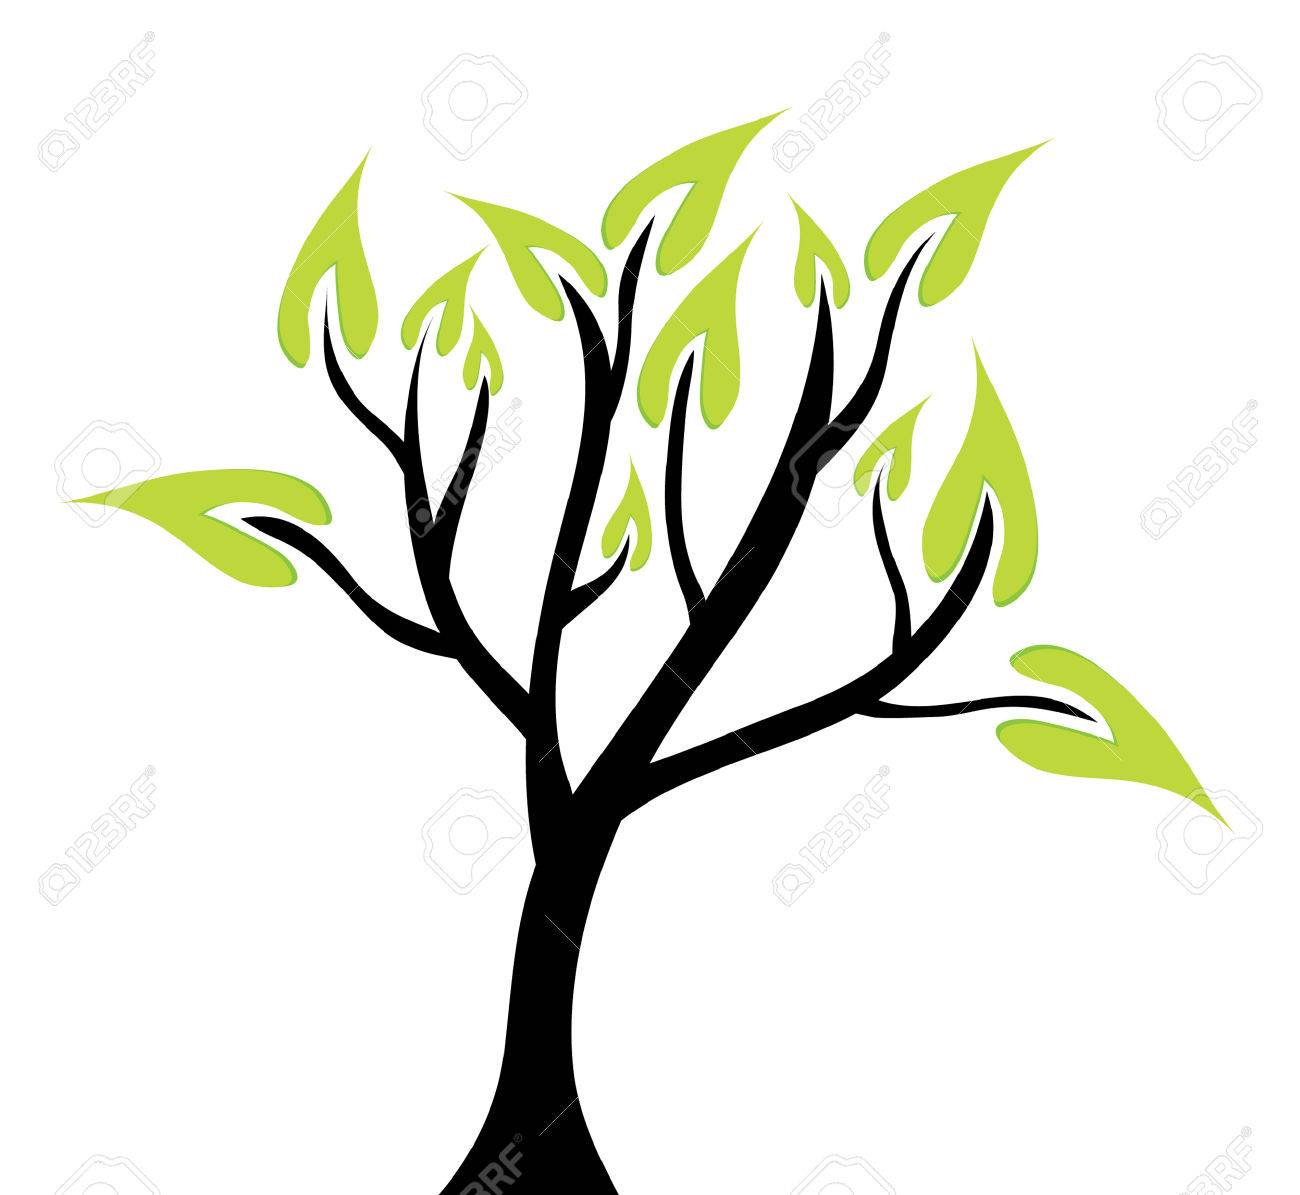 abstract green tree, symbol of nature Stock Vector - 8879622